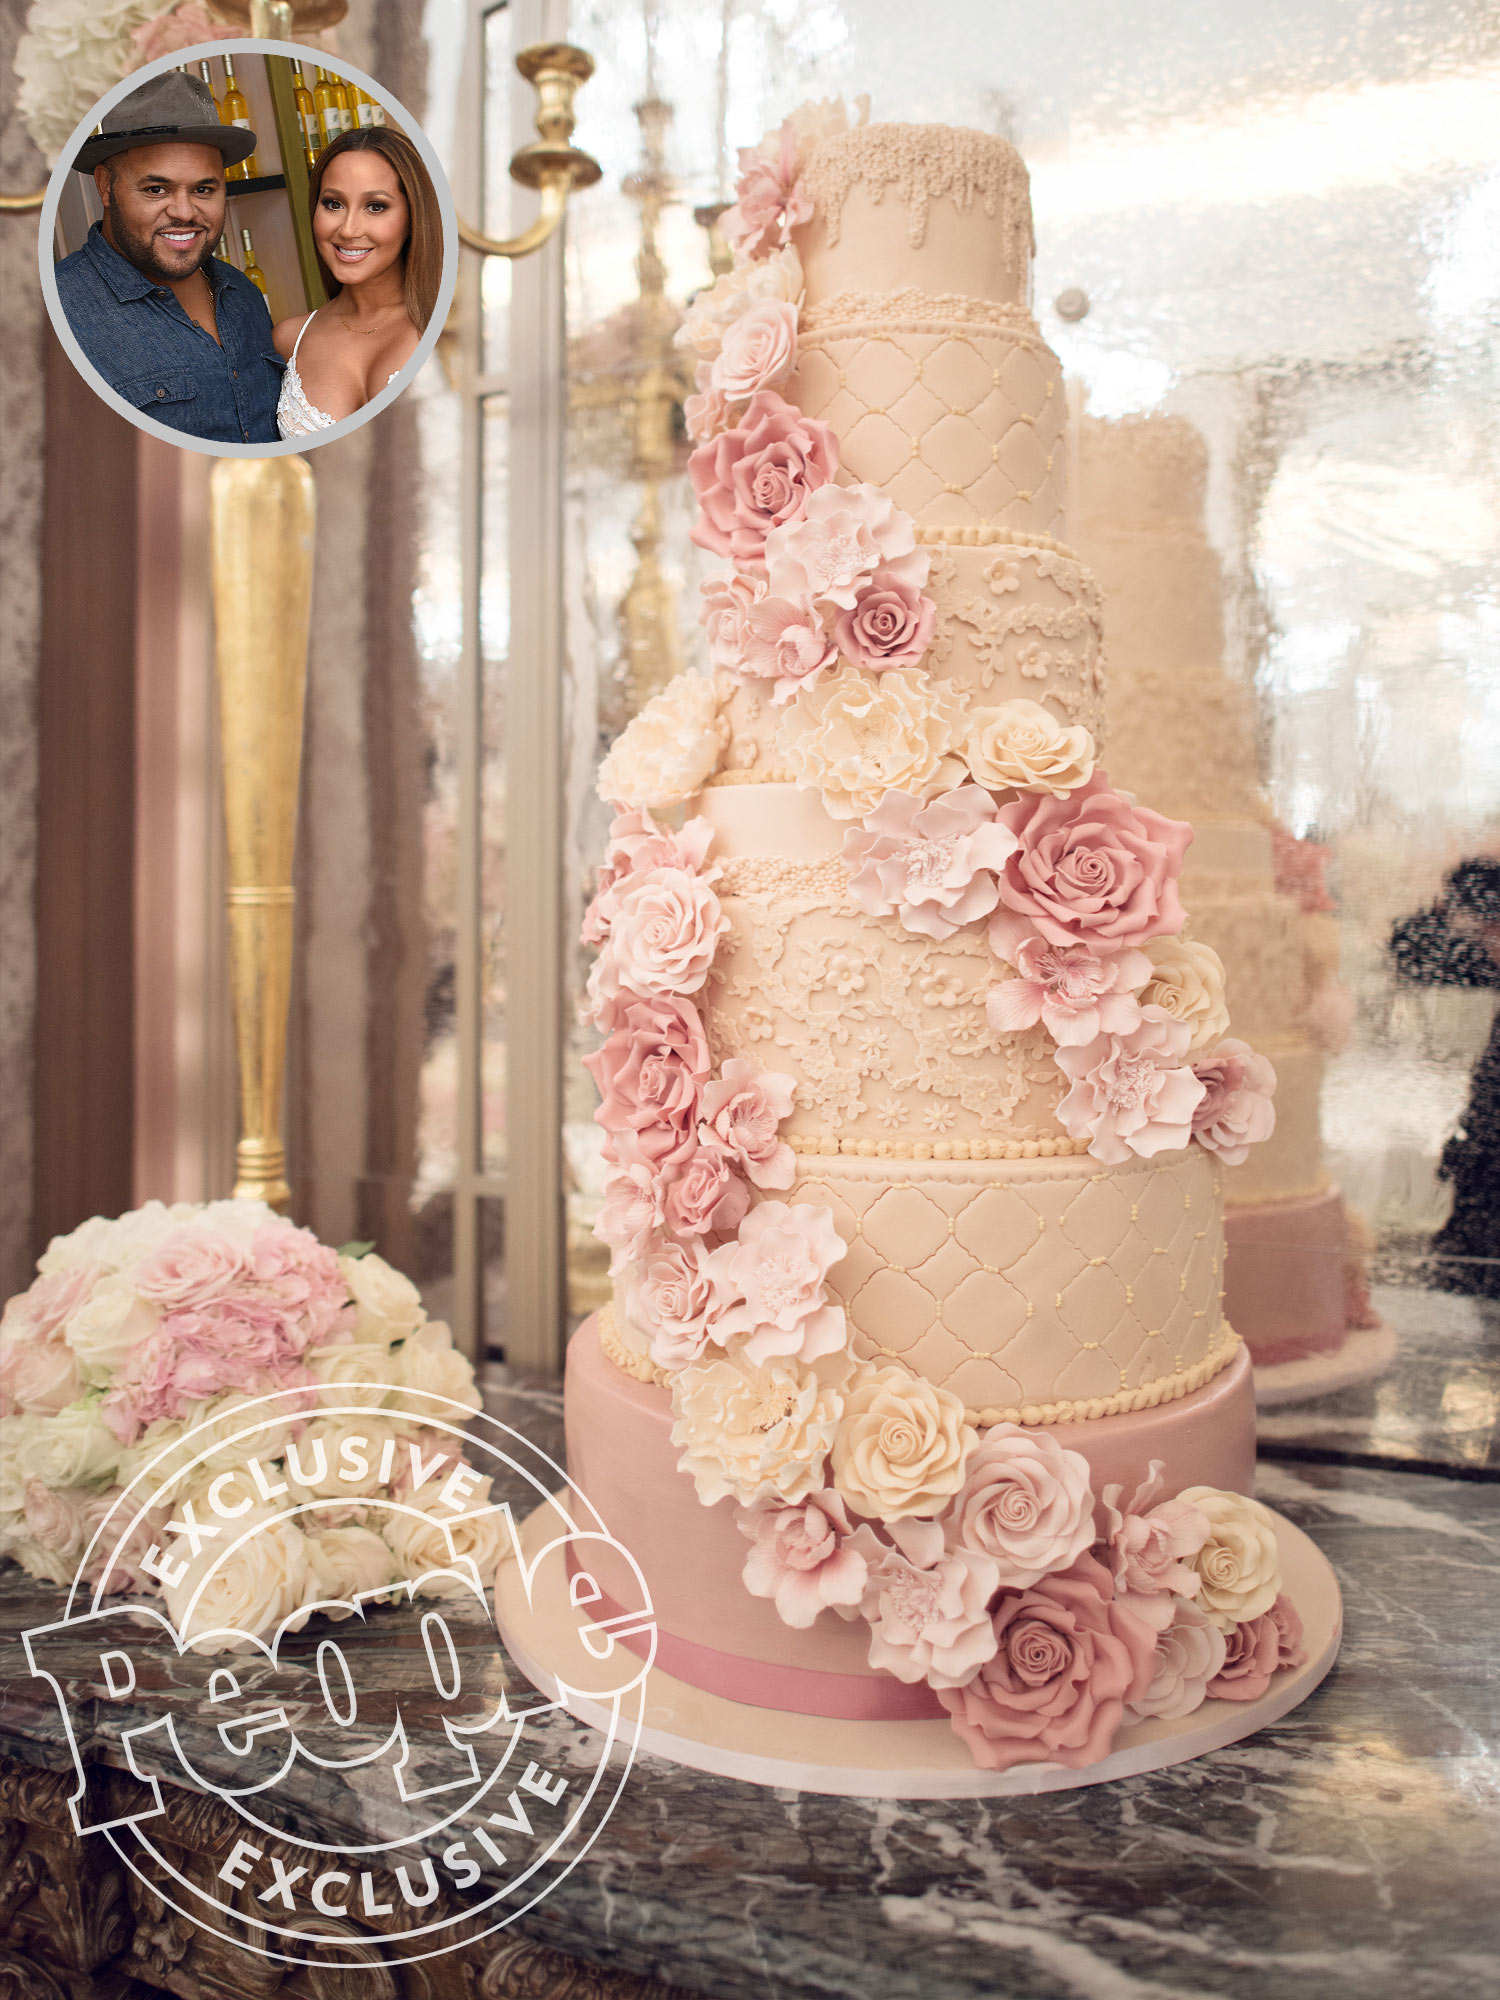 Adrienne Bailon and Israel Houghton Cake